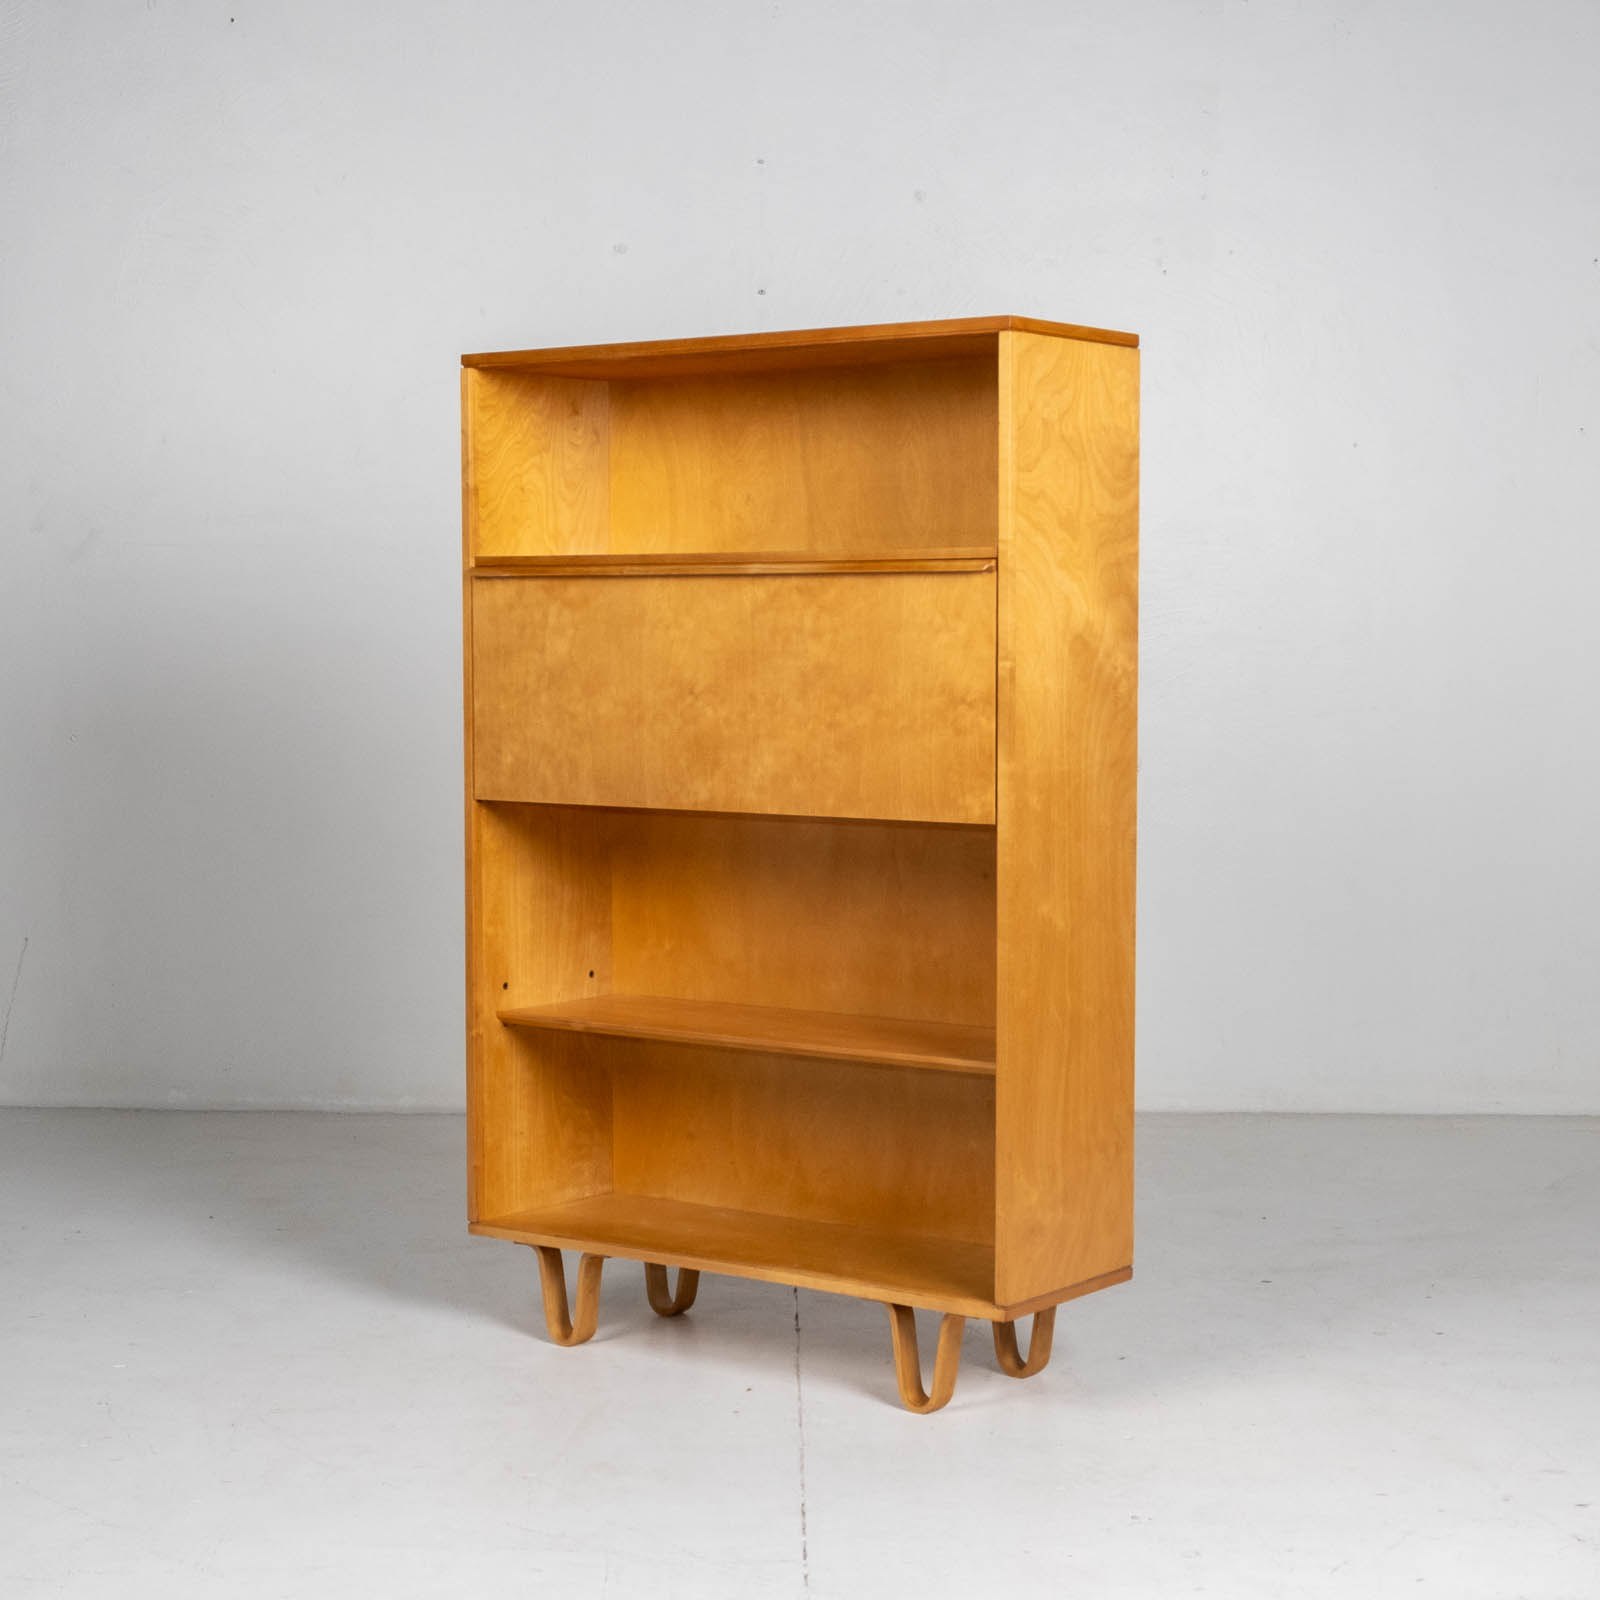 Bb04 Bookcase By Cees Braakman For Pastoe In Birch, 1950s, The Netherlands 0016